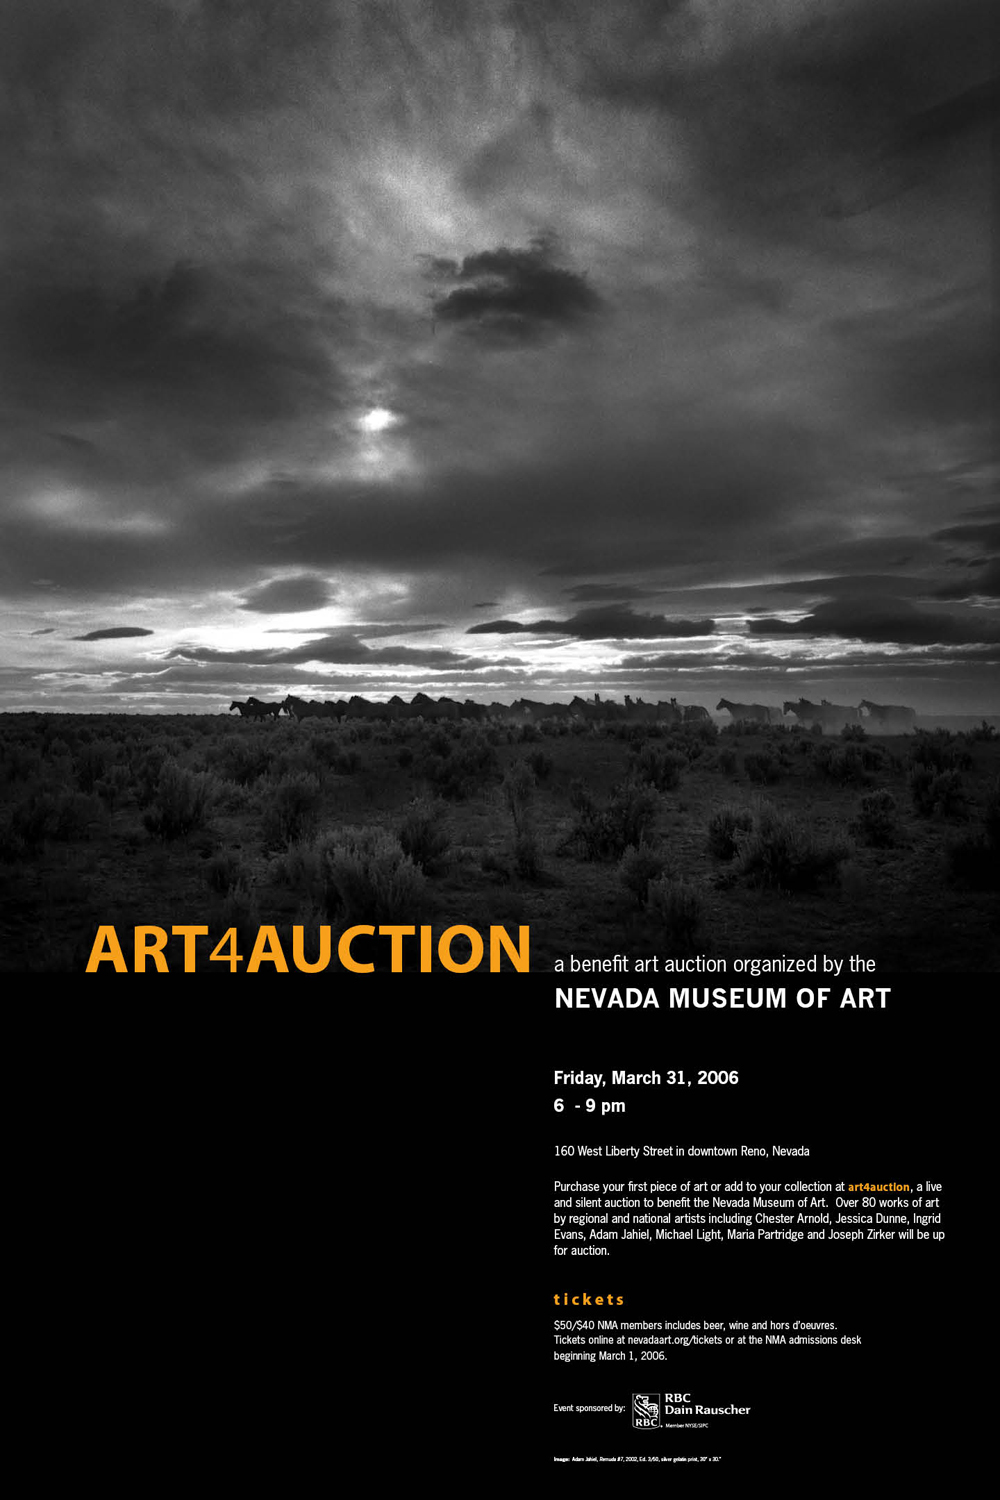 art4auction poster 2006_1.jpg